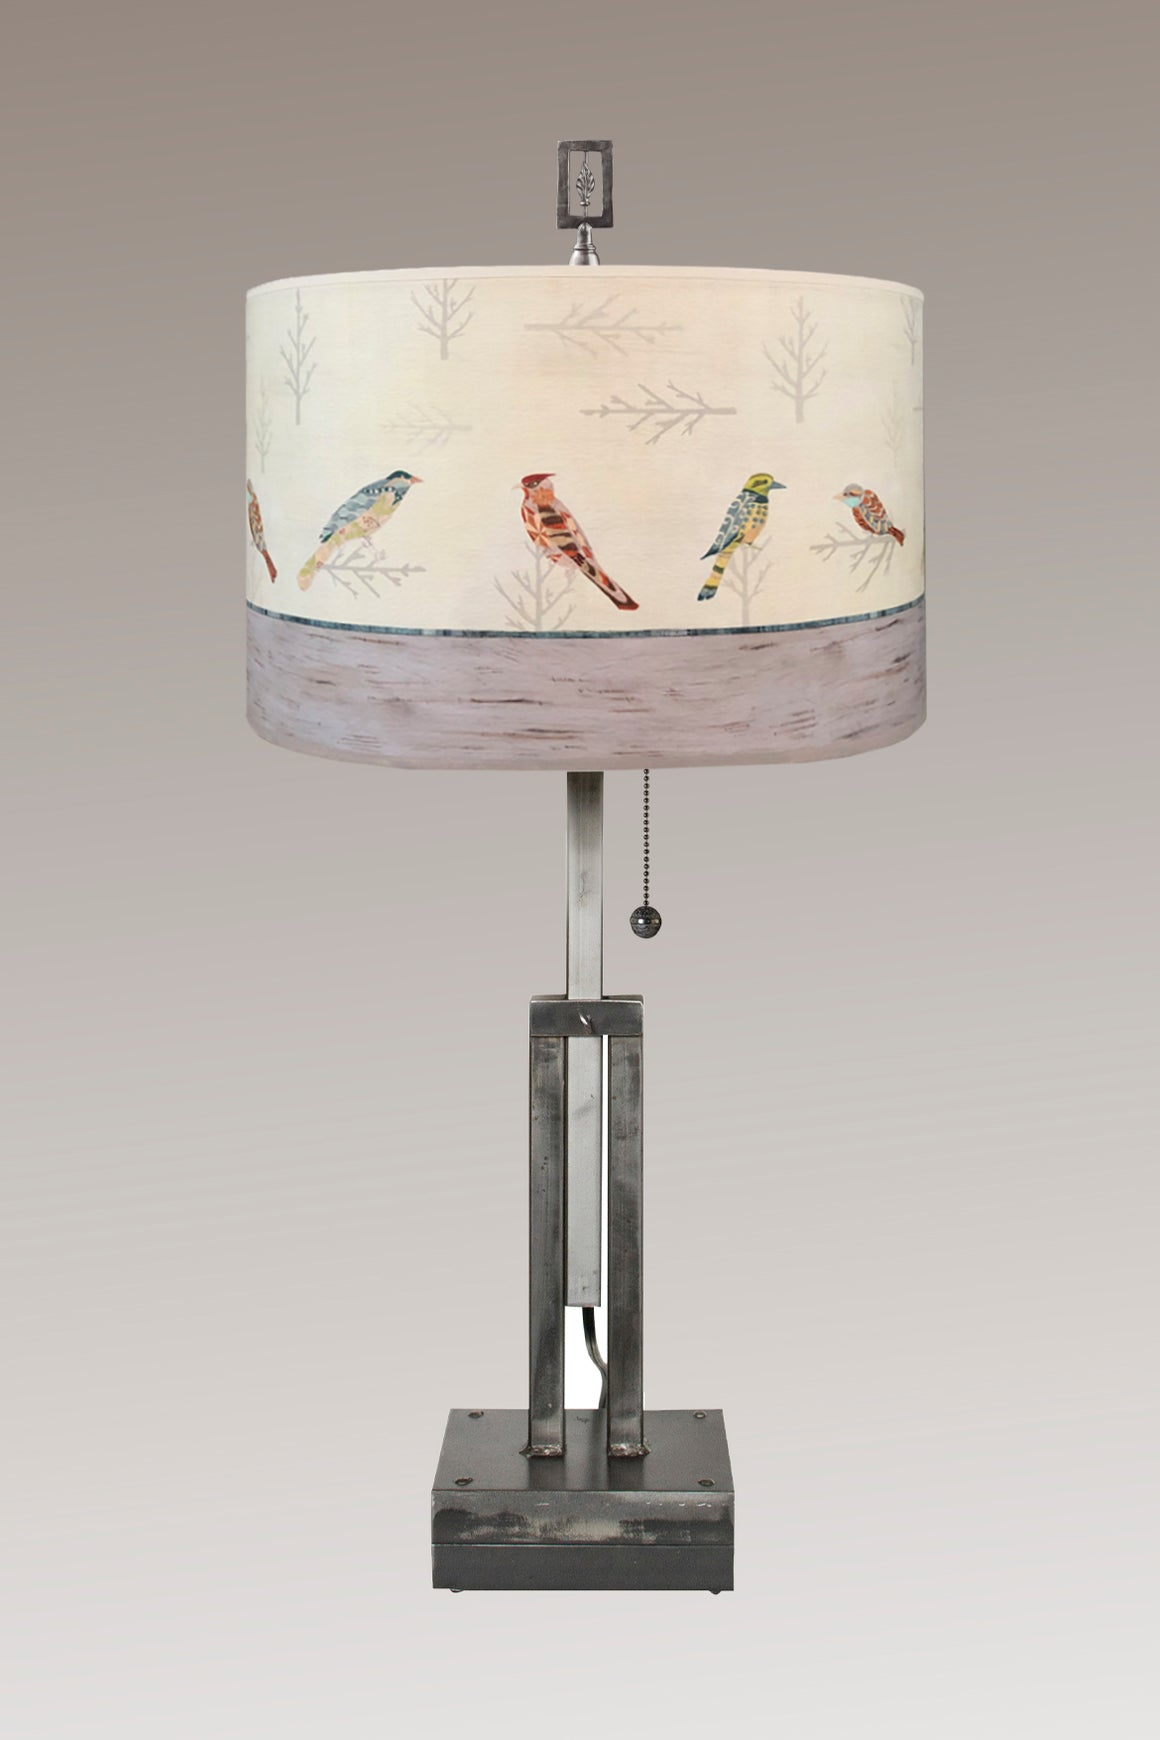 Adjustable-Height Steel Table Lamp with Large Drum Shade in Bird Friends